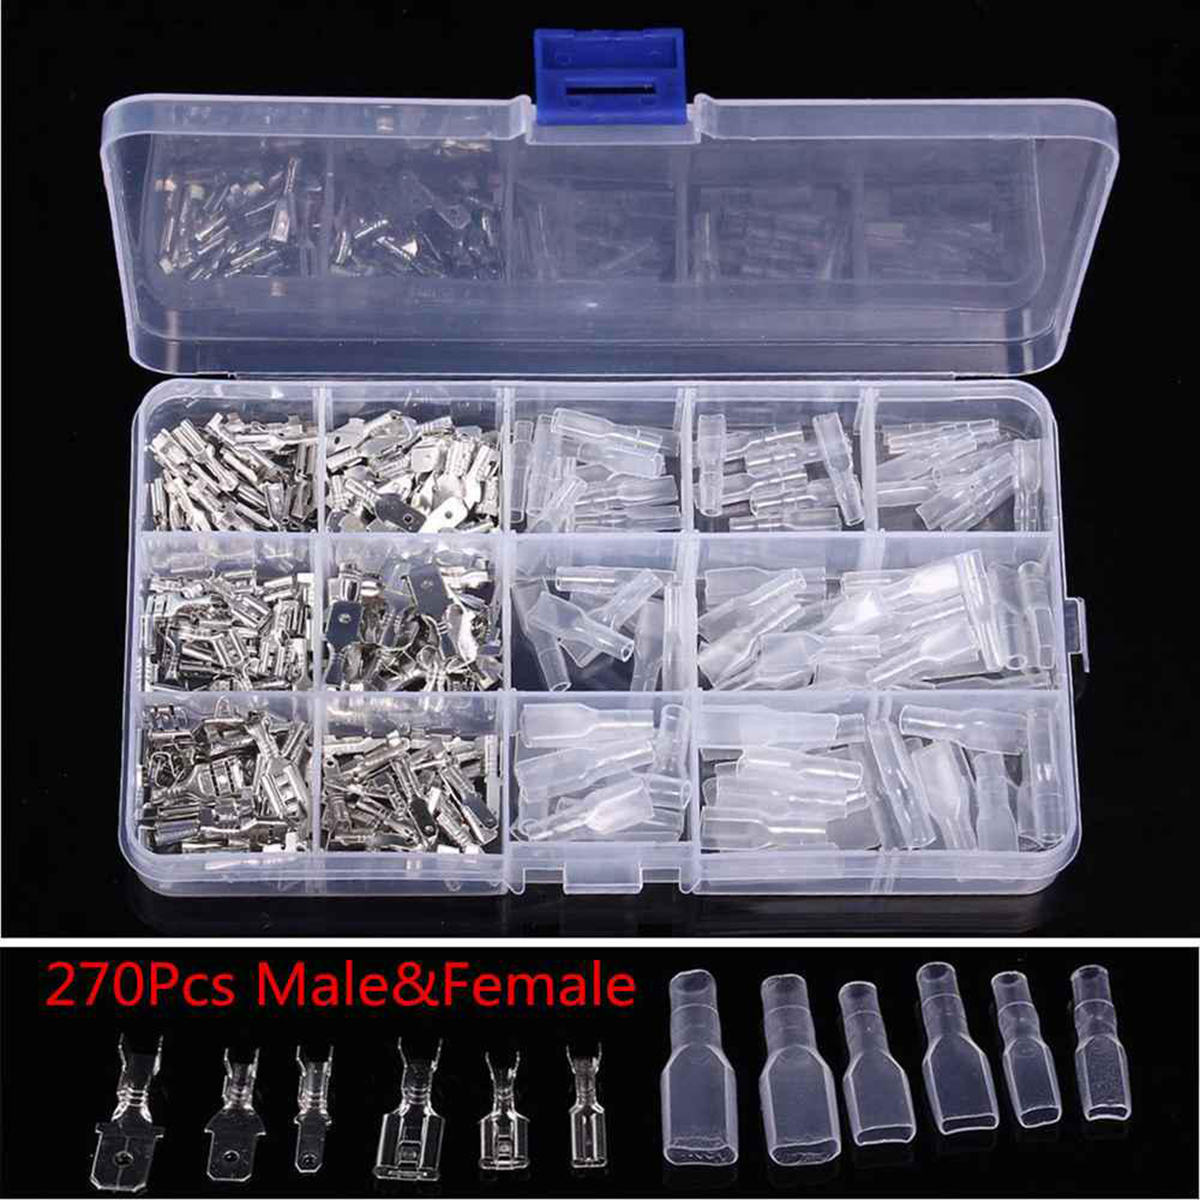 270PCS 2.8/4.8/6.3mm Non-Insulated Mixed Male And Female Spade Crimp Terminal Connector Kit With Storage Case